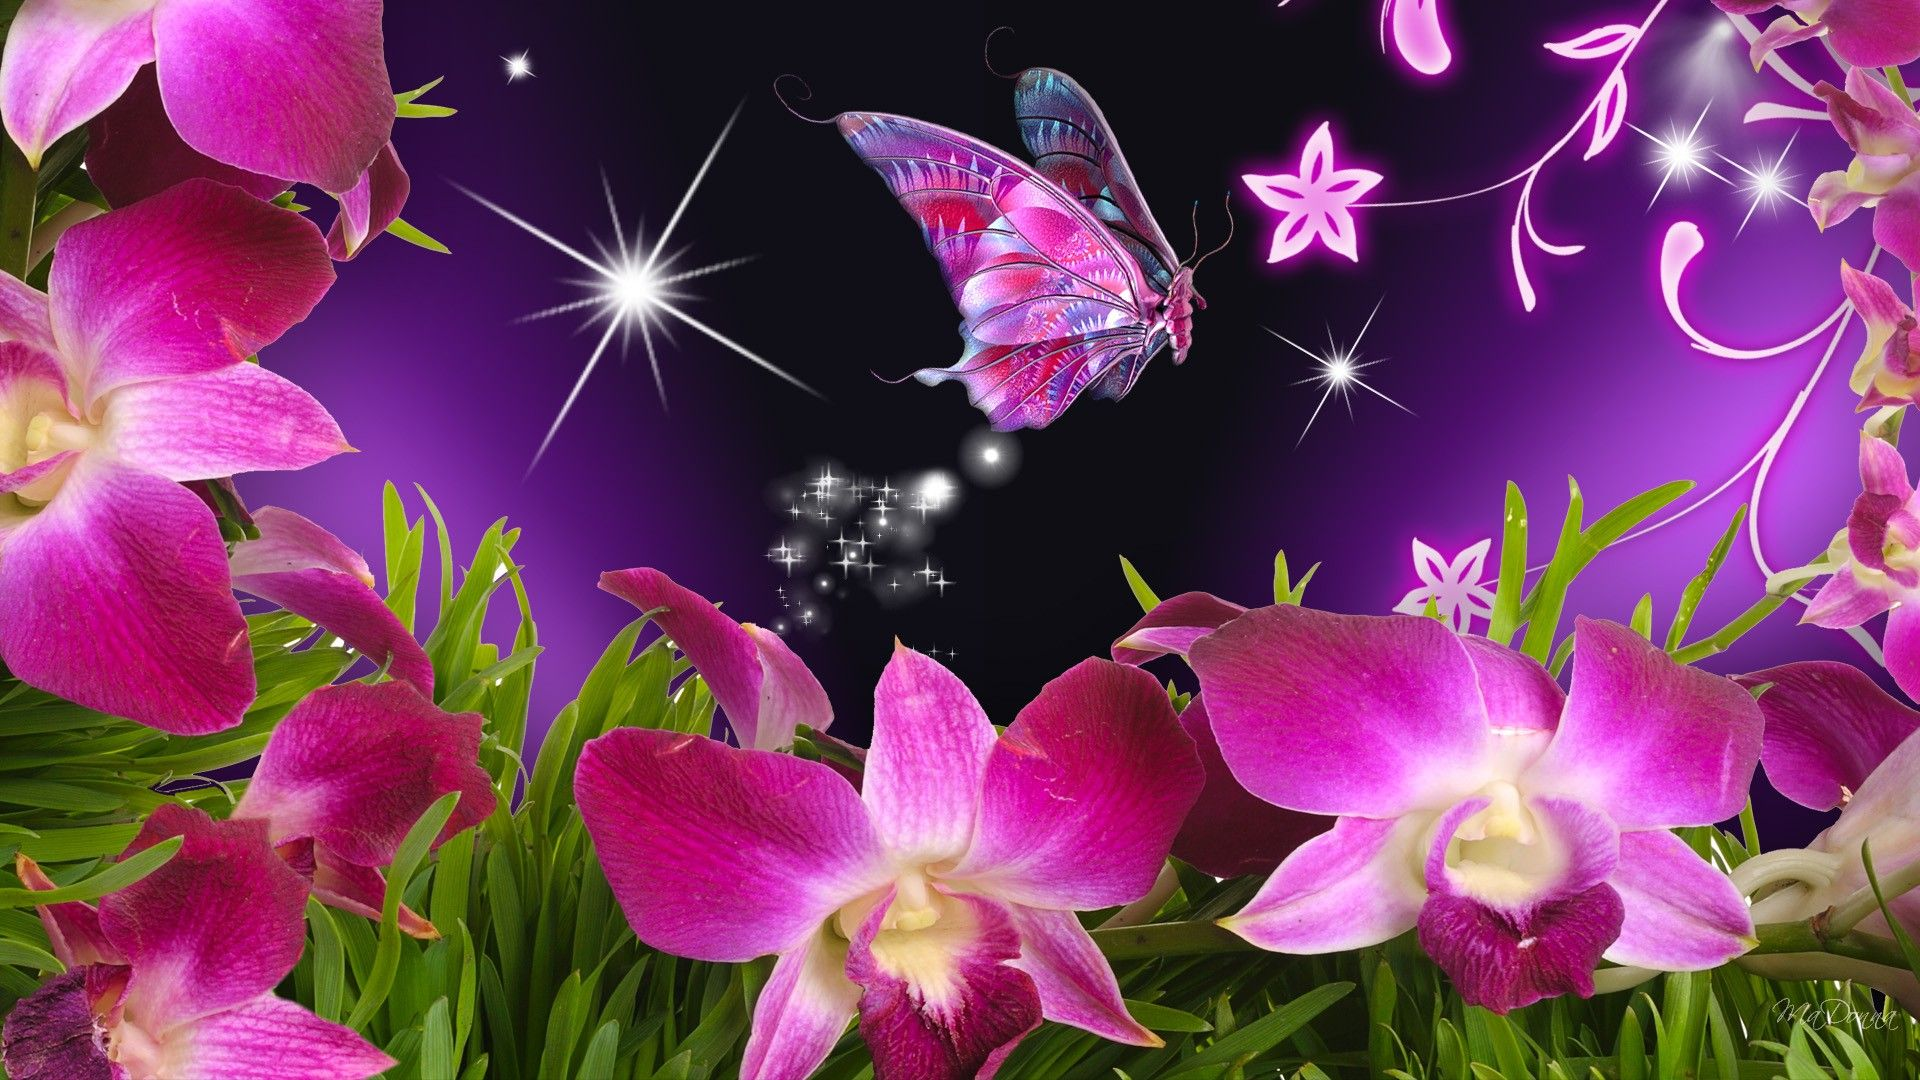 Ordinaire Butterflies And Flowers | Butterfly Flowers Orchid Purple Stars Vines Free  Hd Wallpapers